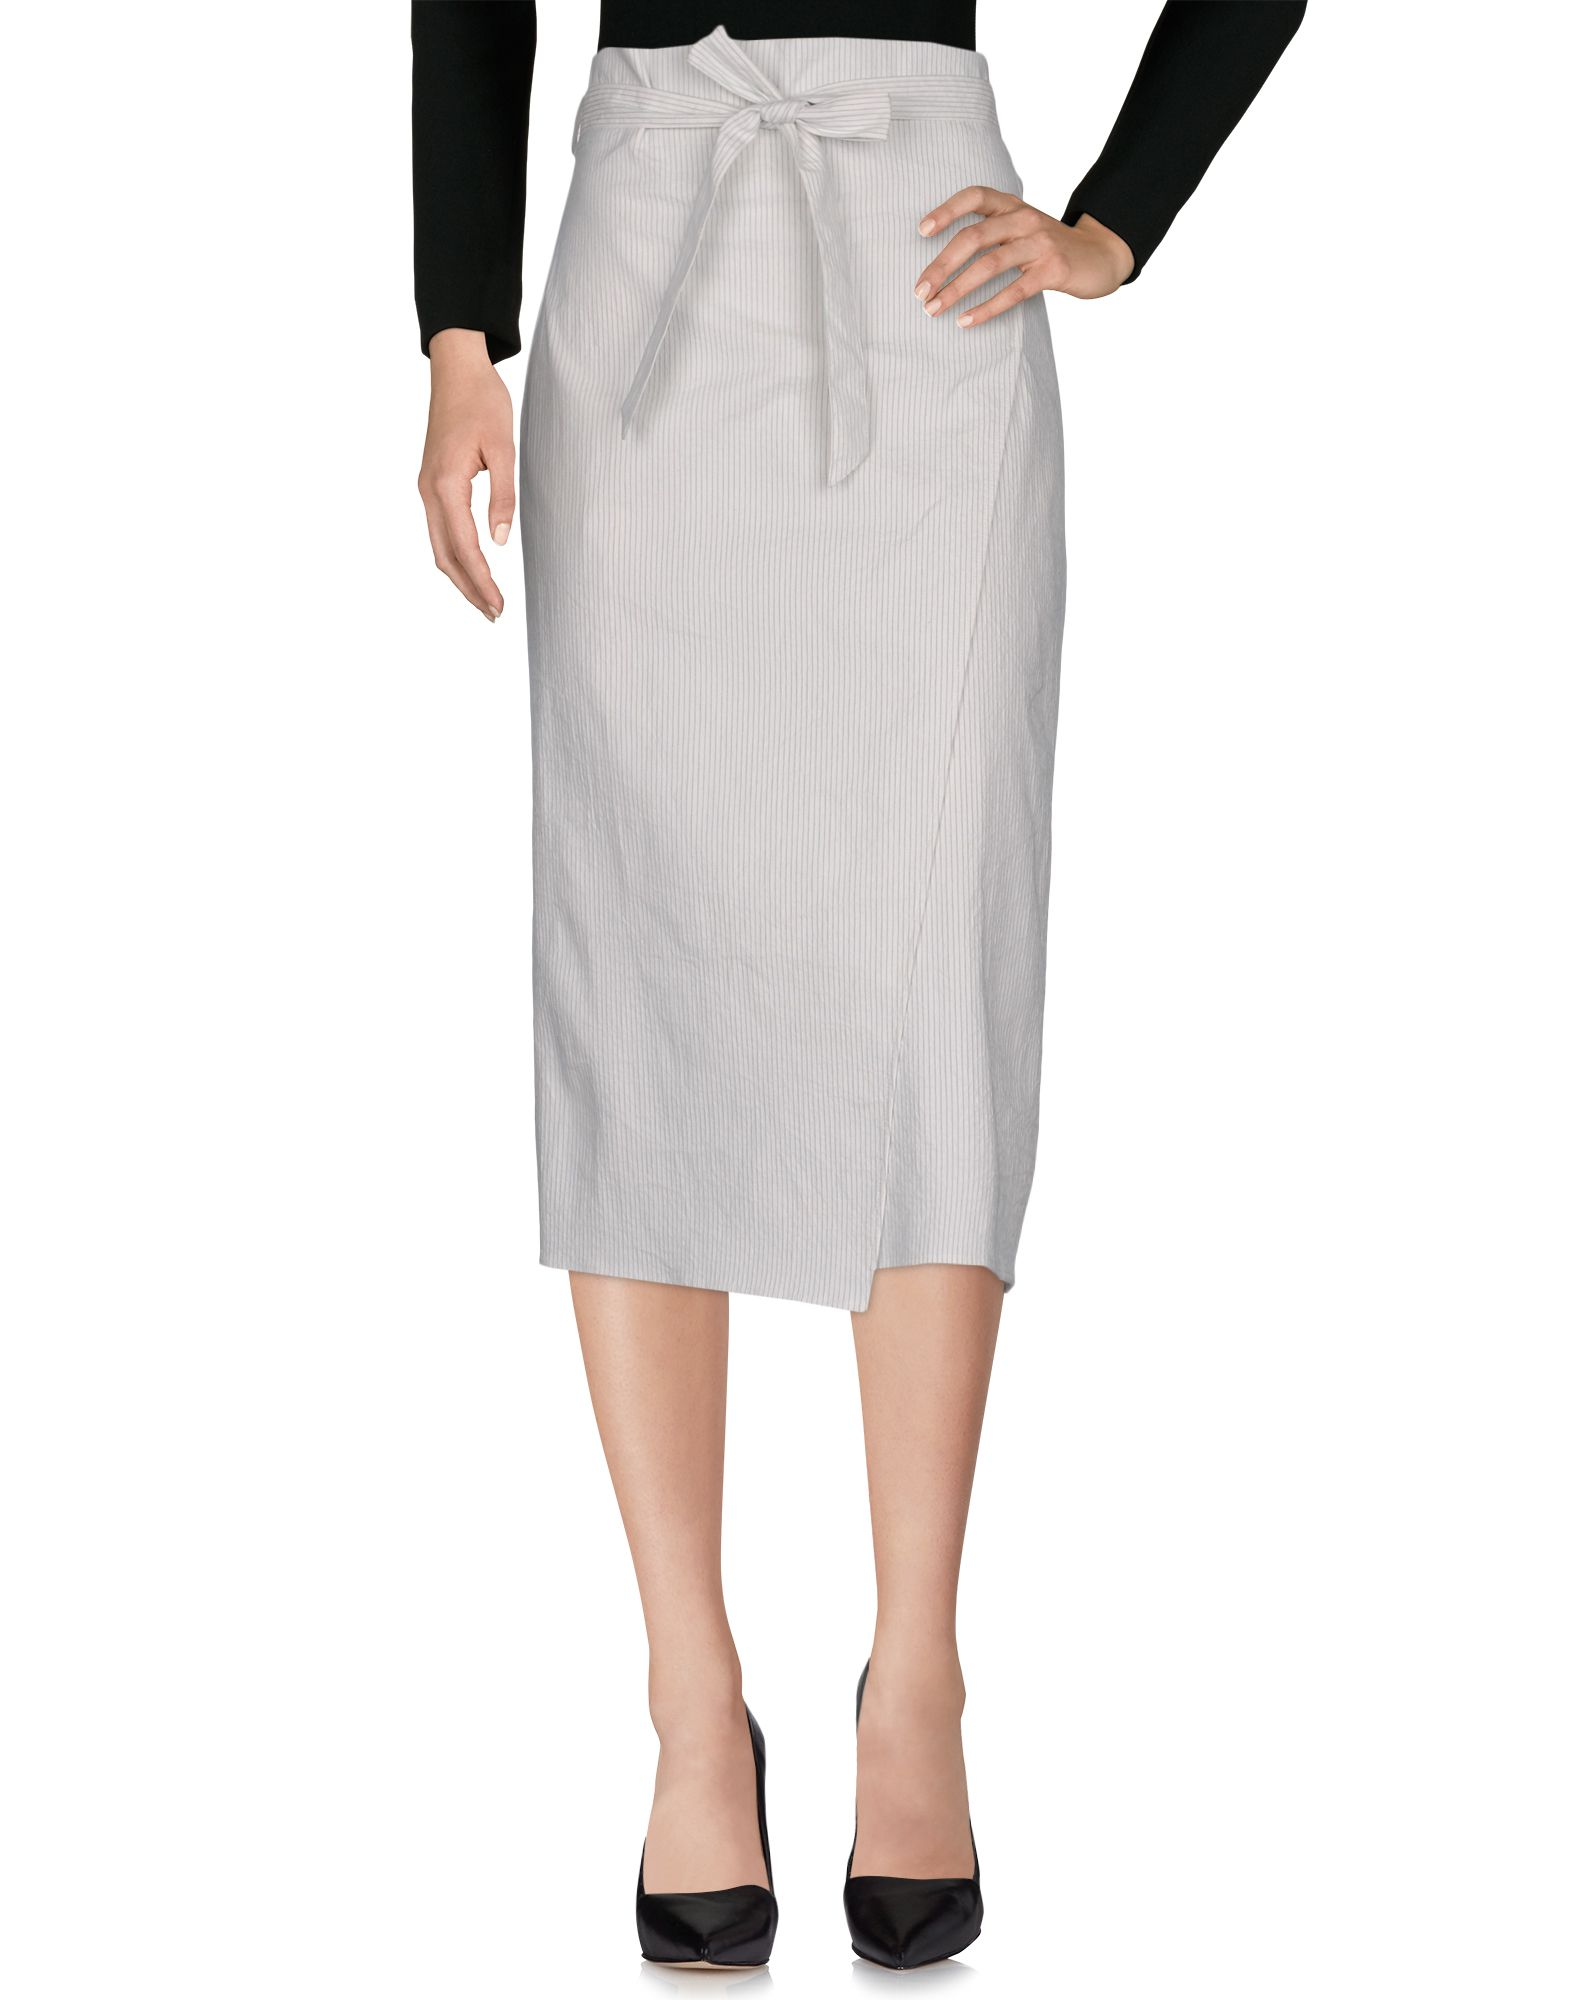 OPPORTUNO Midi Skirts in White